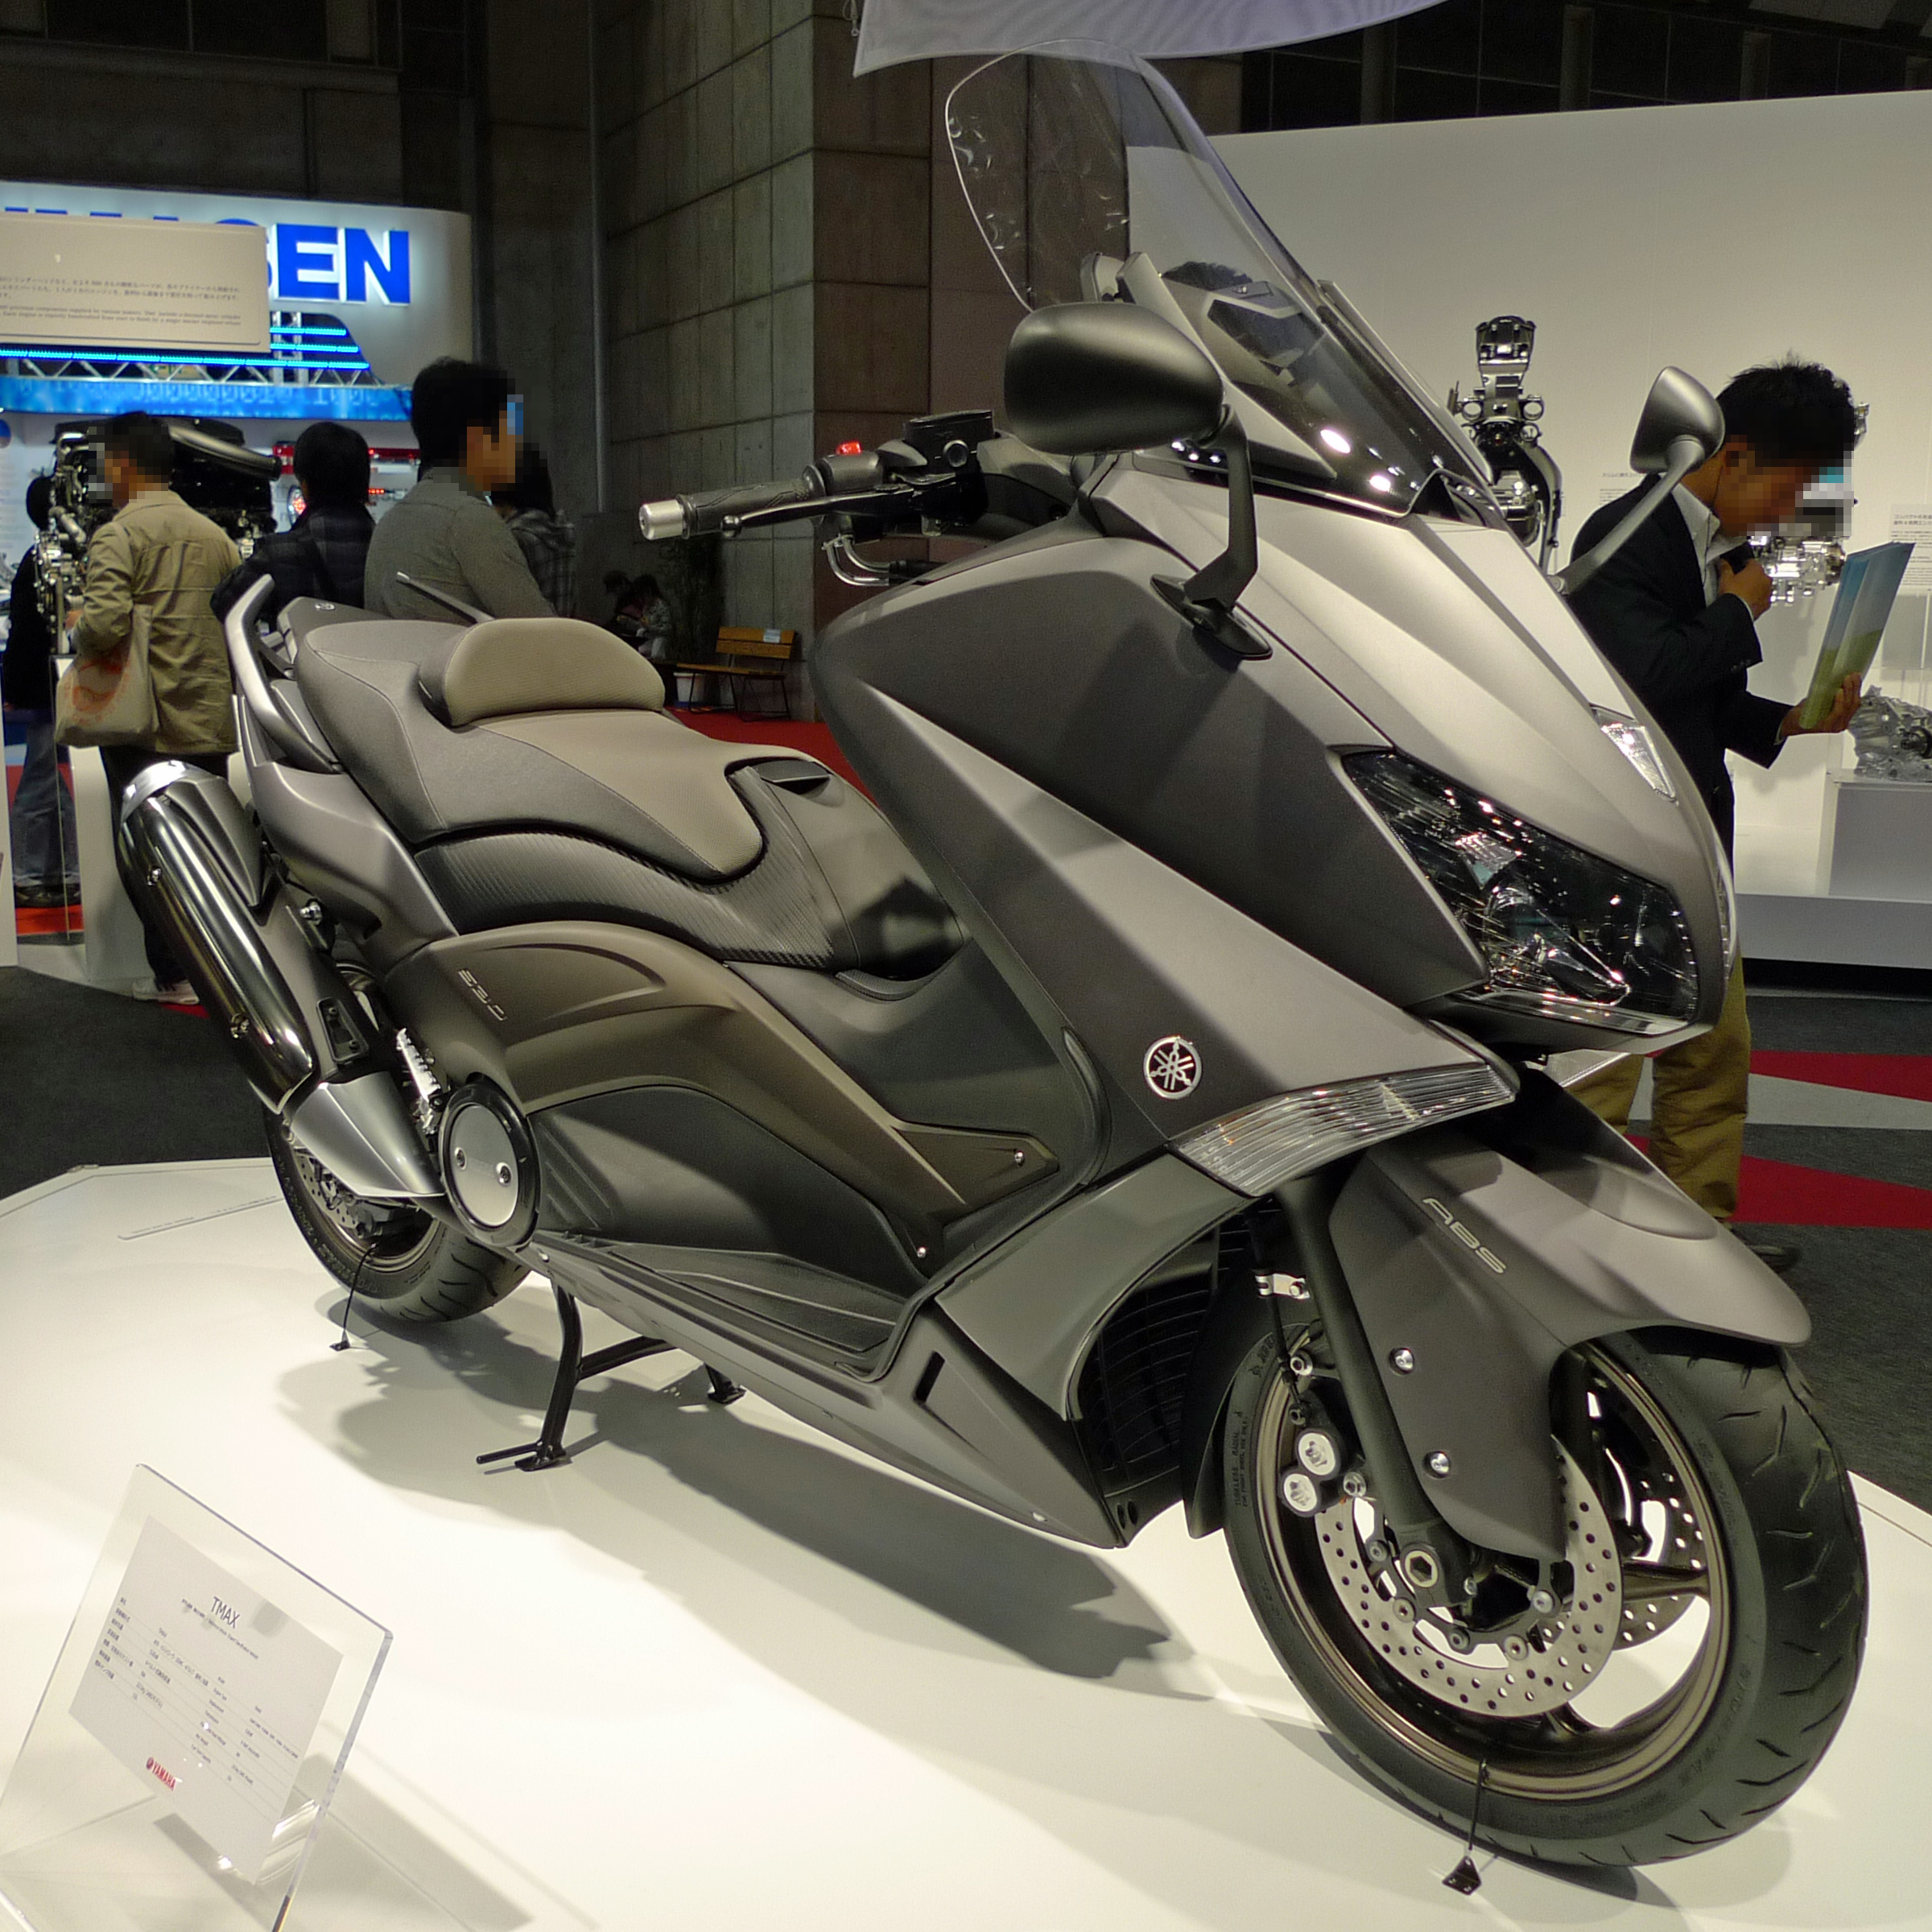 file yamaha tmax 2011 tokyo motor wikimedia commons. Black Bedroom Furniture Sets. Home Design Ideas